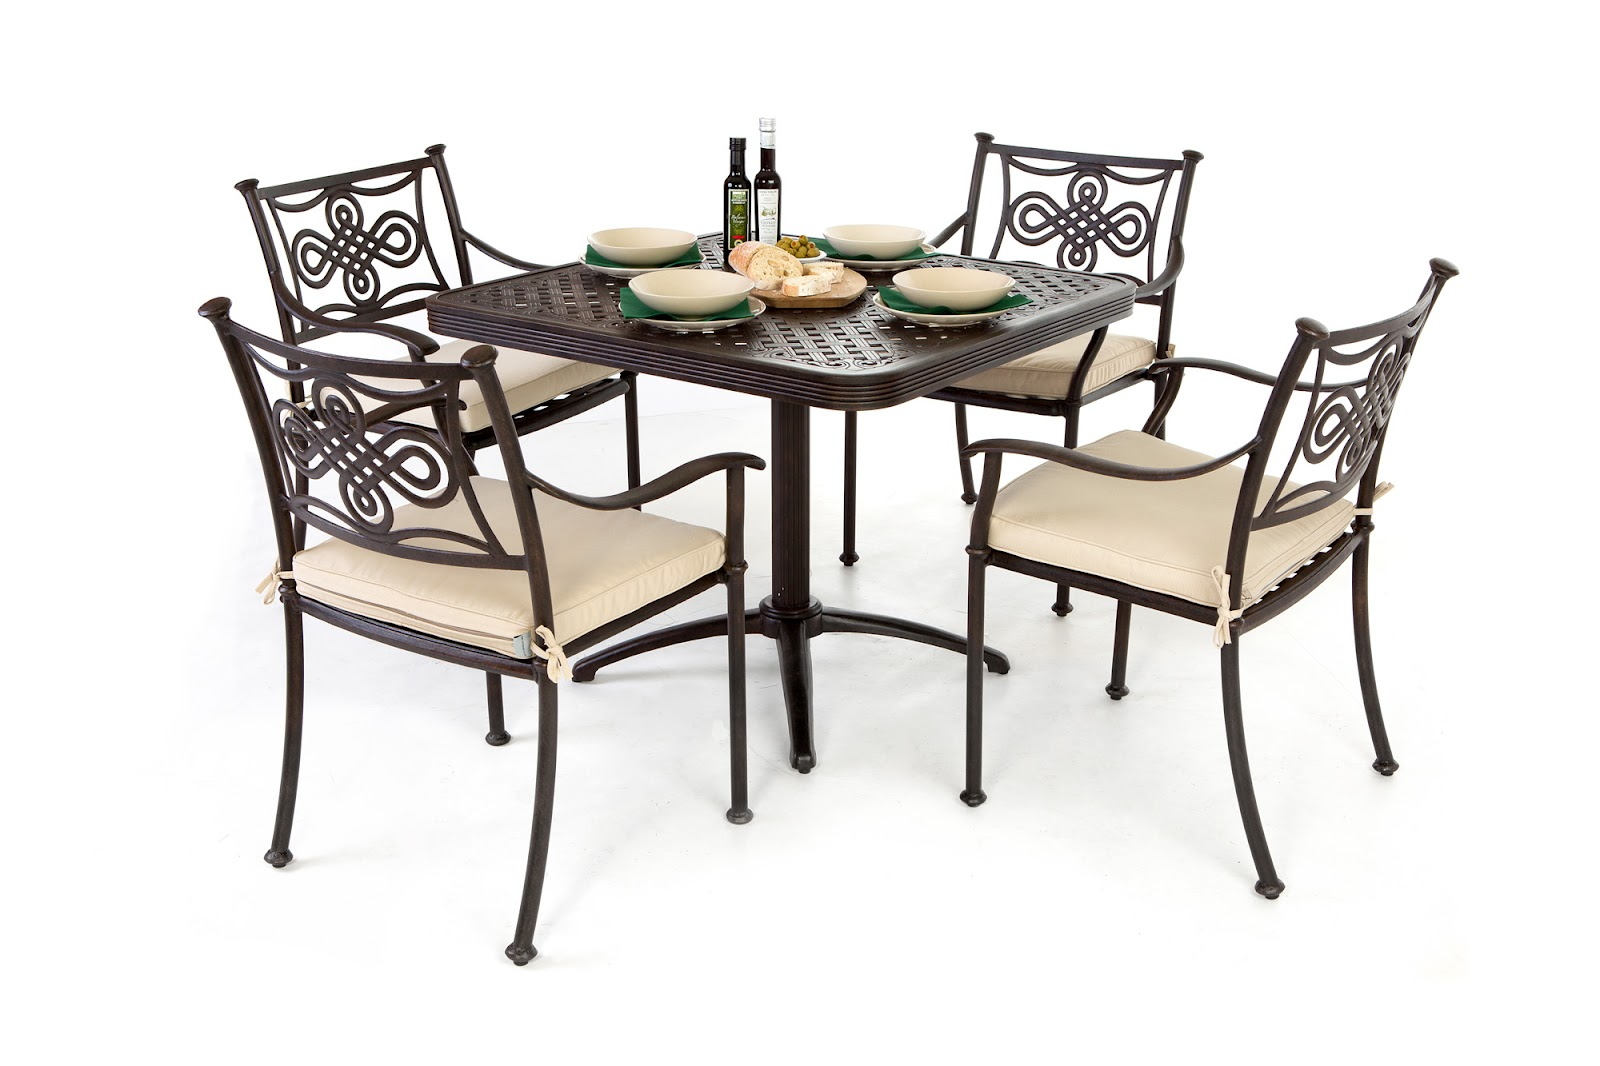 Outside edge garden furniture blog restaurant 23 selects for Small metal patio set